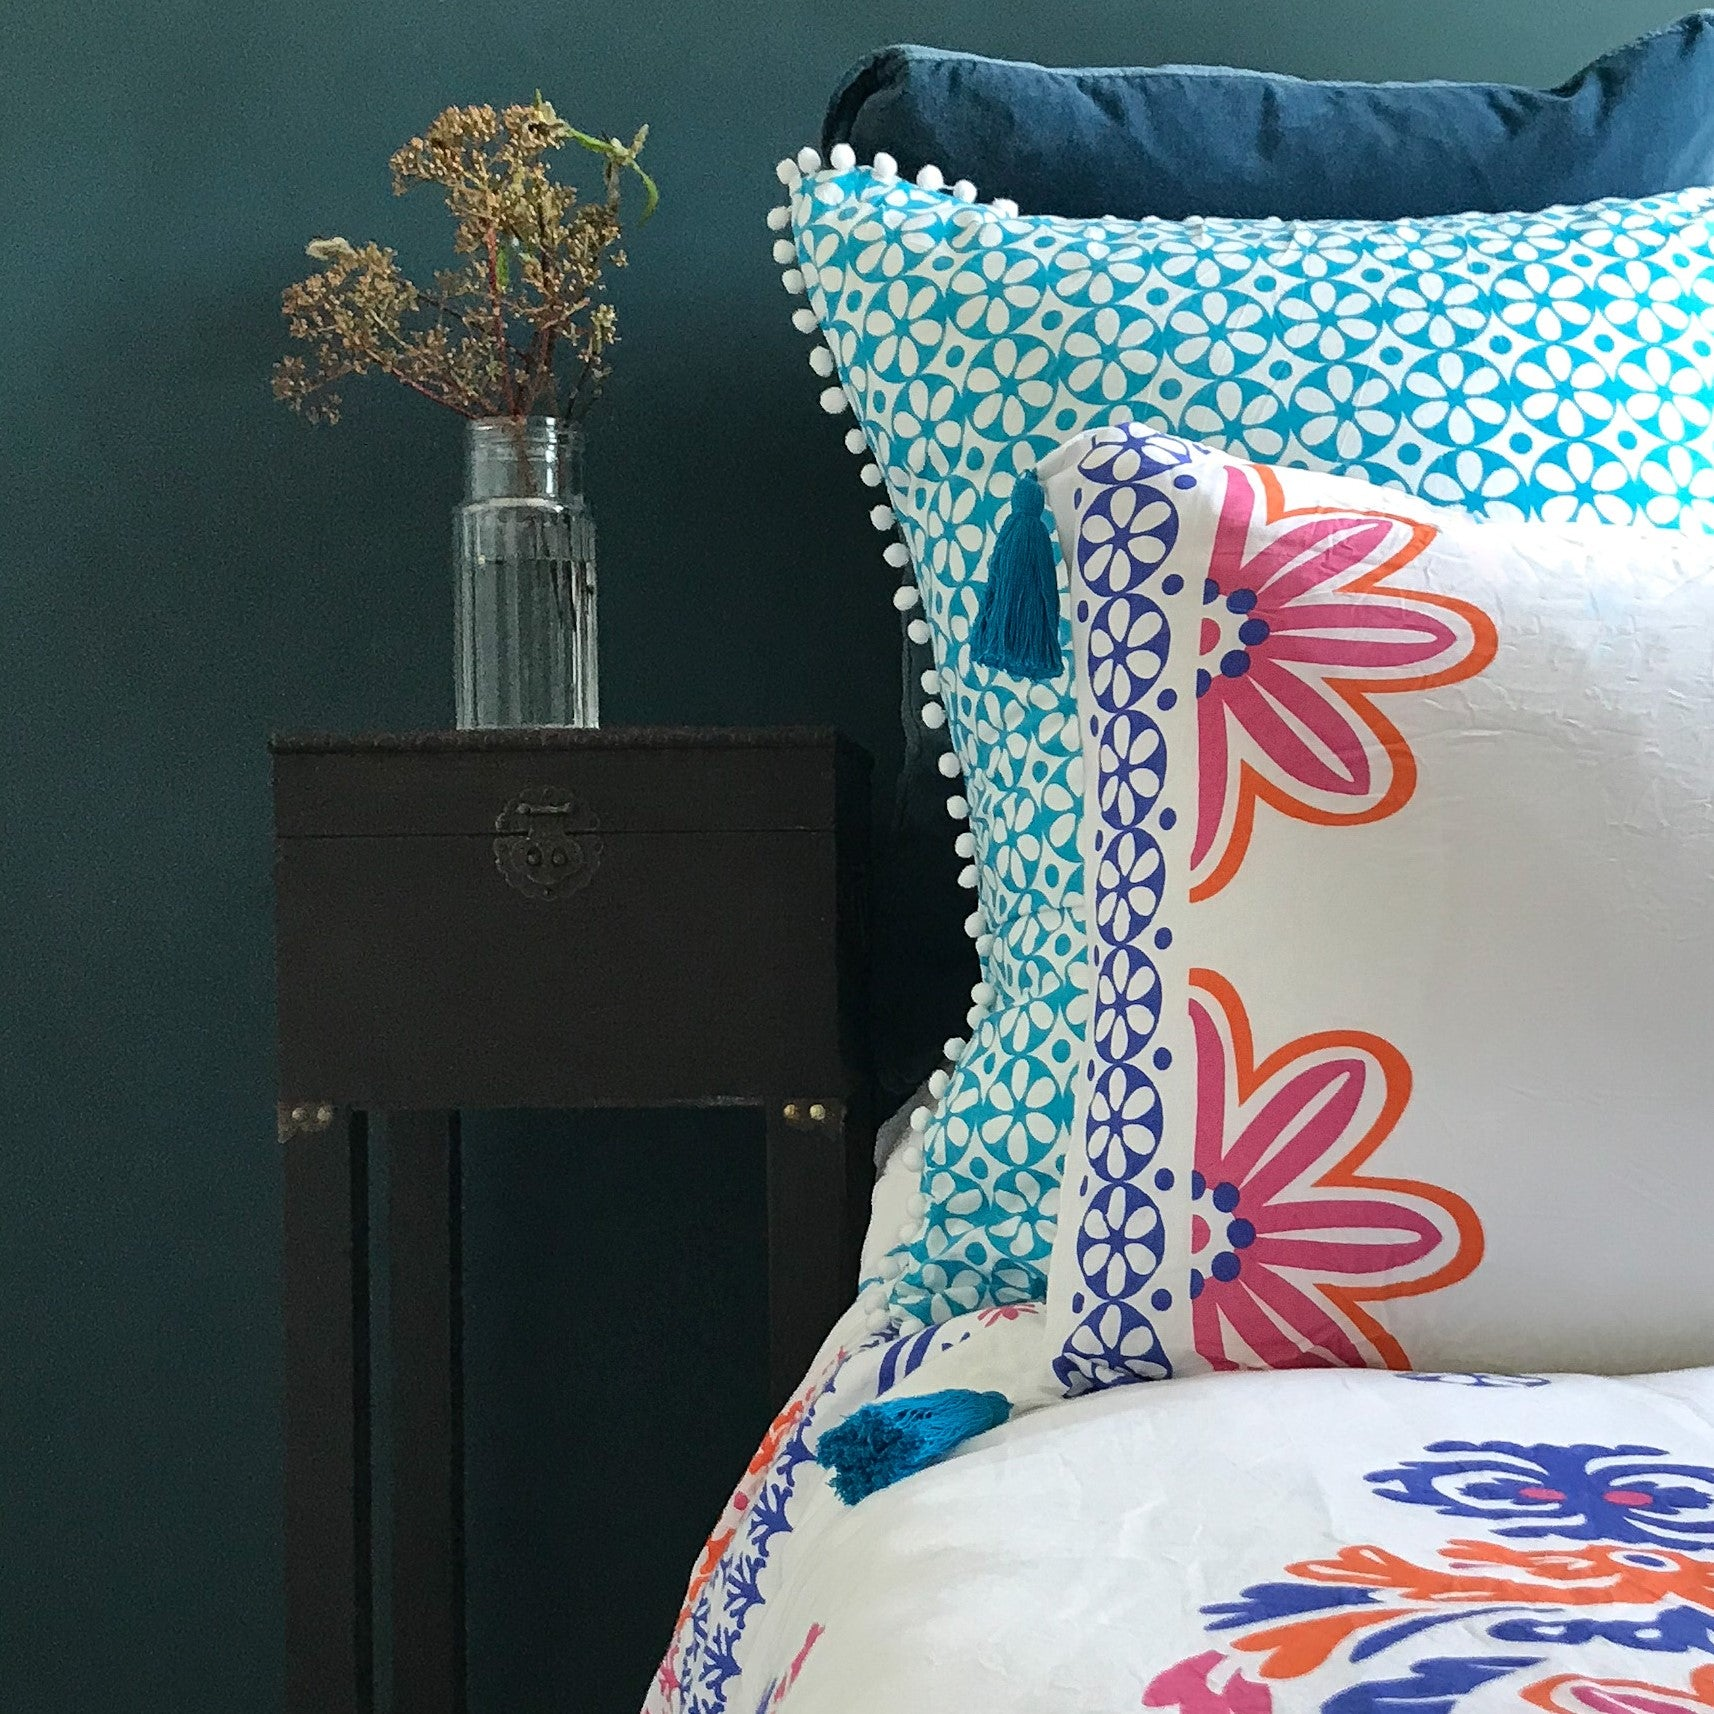 Orange, pink and blue stylised orchid motifs on crisp white luxury organic cotton pillowcases.  Finished with vivid blue removable tassels.